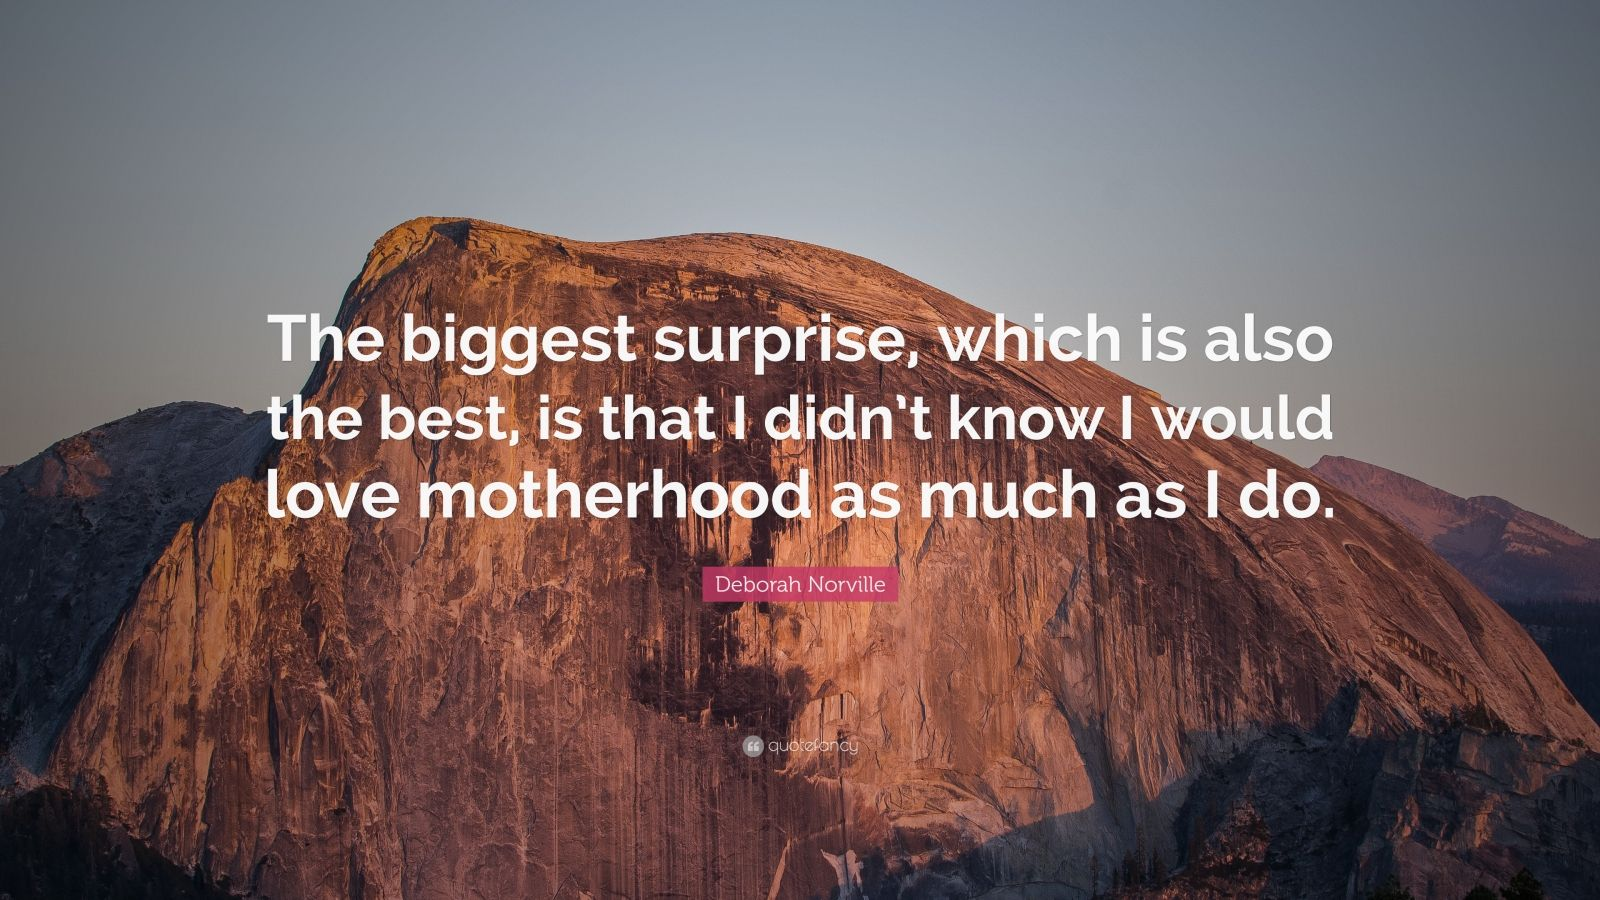 """Deborah Norville Quote: """"The biggest surprise, which is also the best, is that I didn't know I would love motherhood as much as I do."""""""